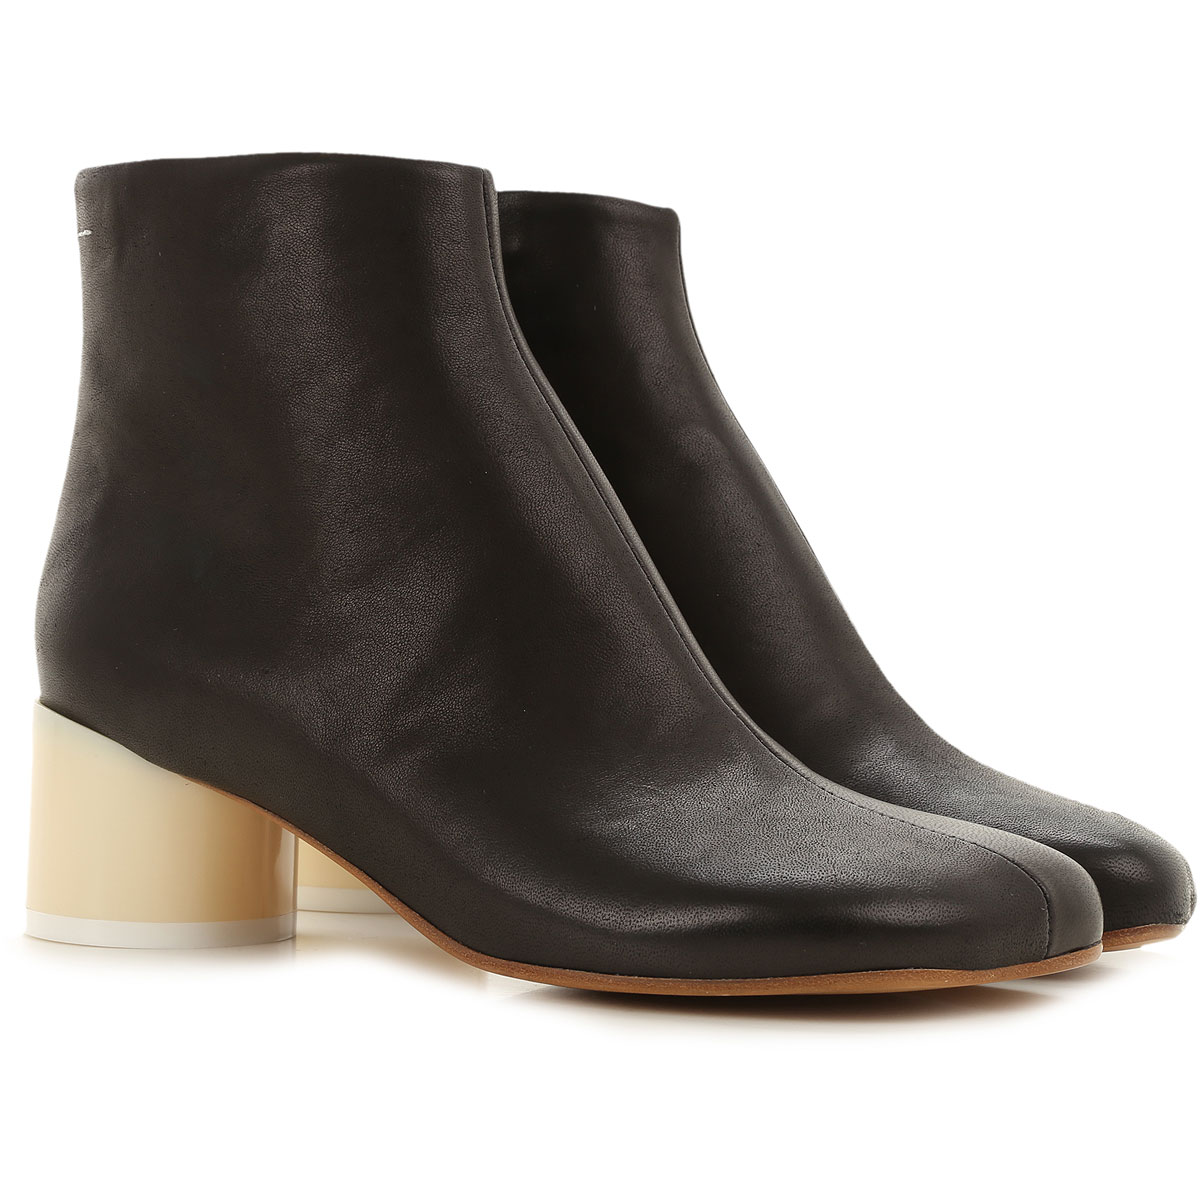 Maison Martin Margiela Boots For Women, Booties On Sale, Black, Leather, 2019, 6